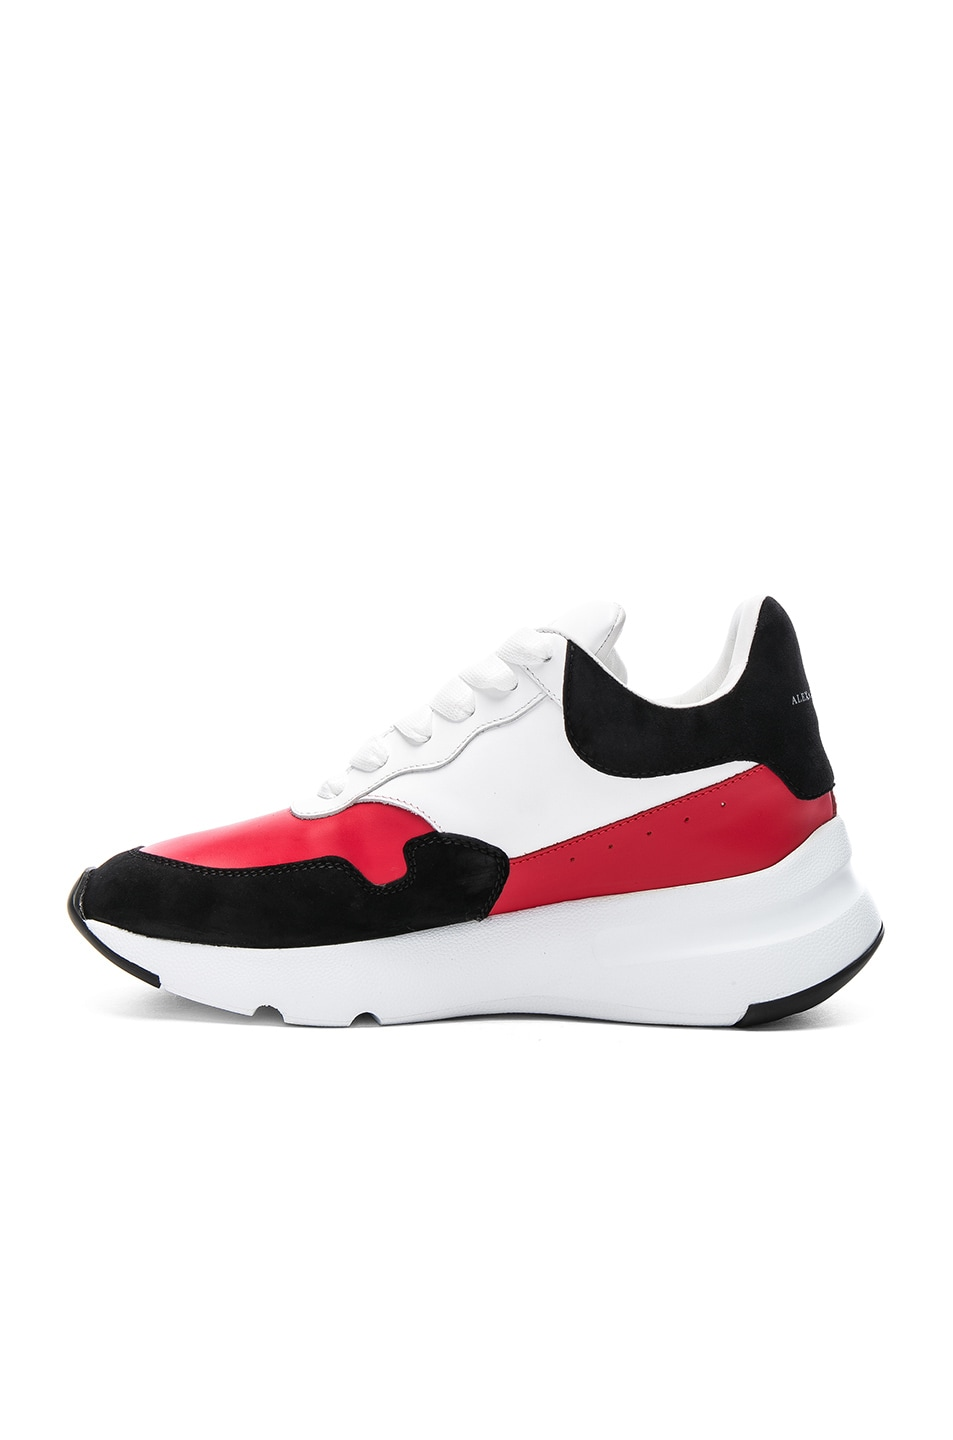 Alexander McQueen Leather & Suede Lace Up Sneakers in Lust & Wiki For Sale Fast Delivery fmCHpUm